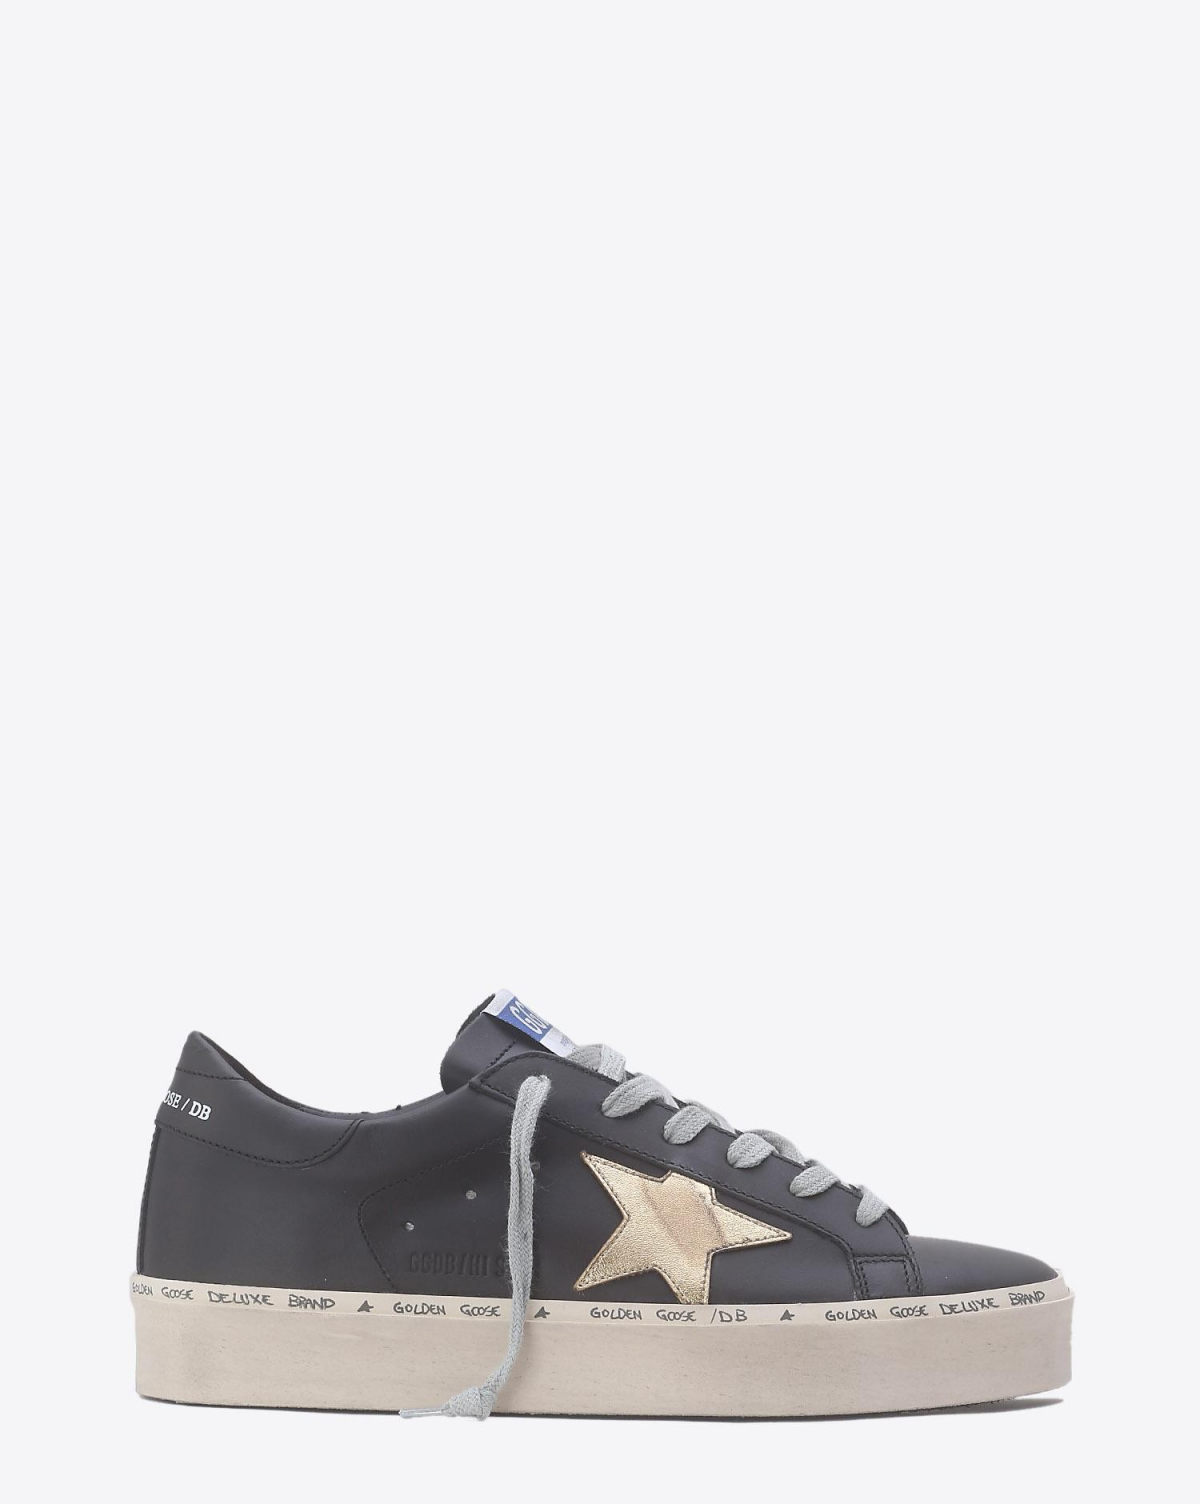 Golden Goose Woman Collection Sneakers Hi Star - Black / Gold Leather Star